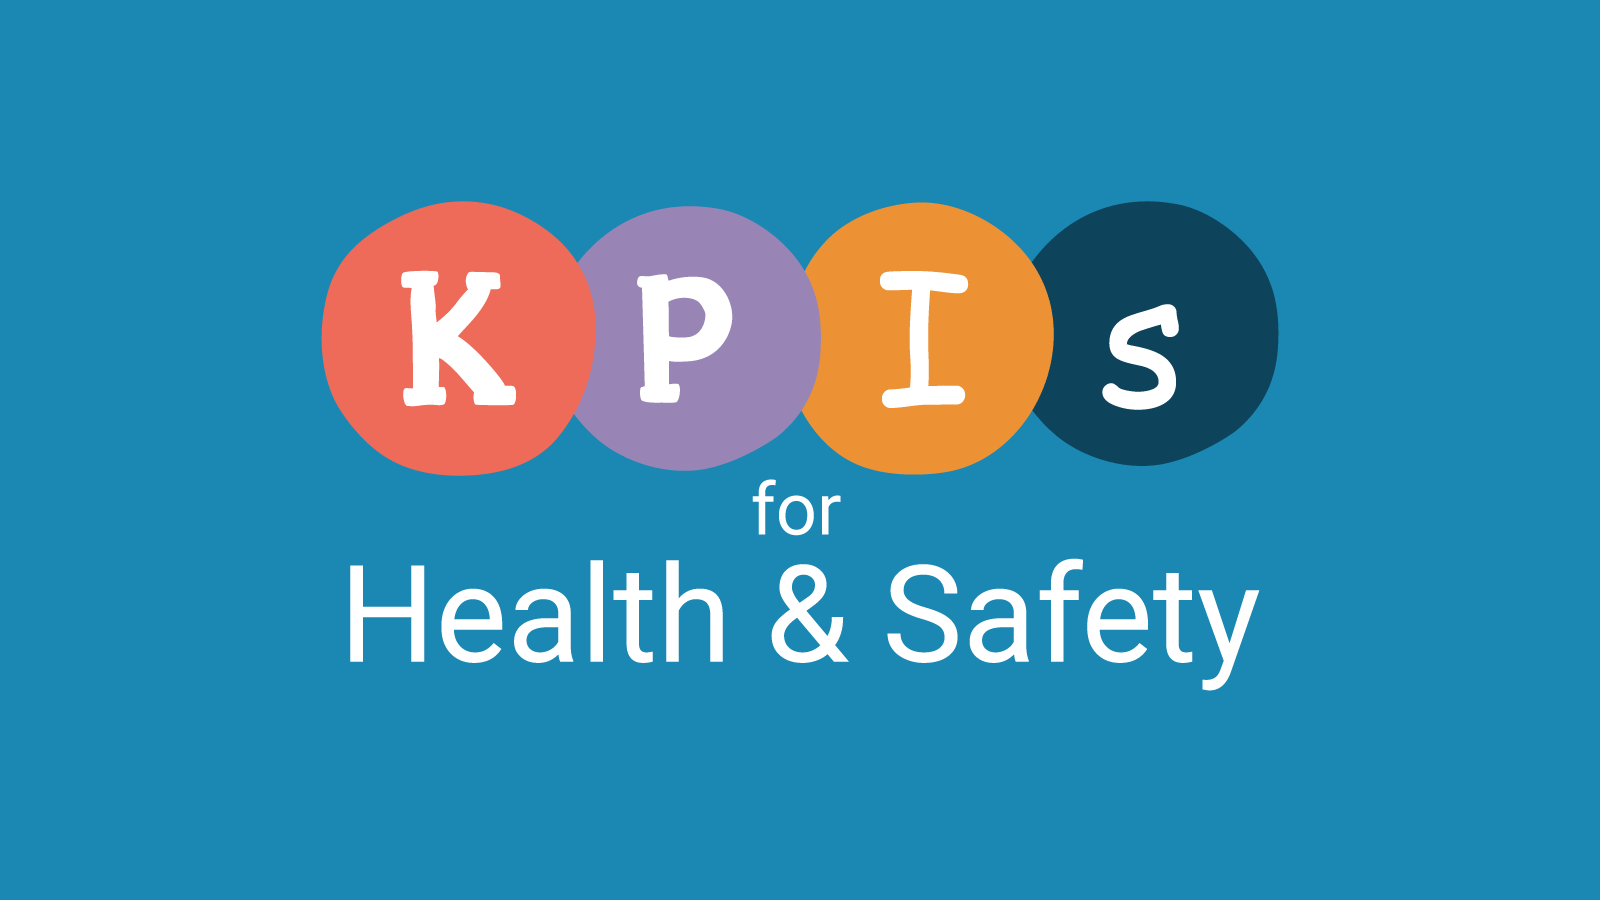 Health and Safety KPIs - The 12 Key Metrics to Track